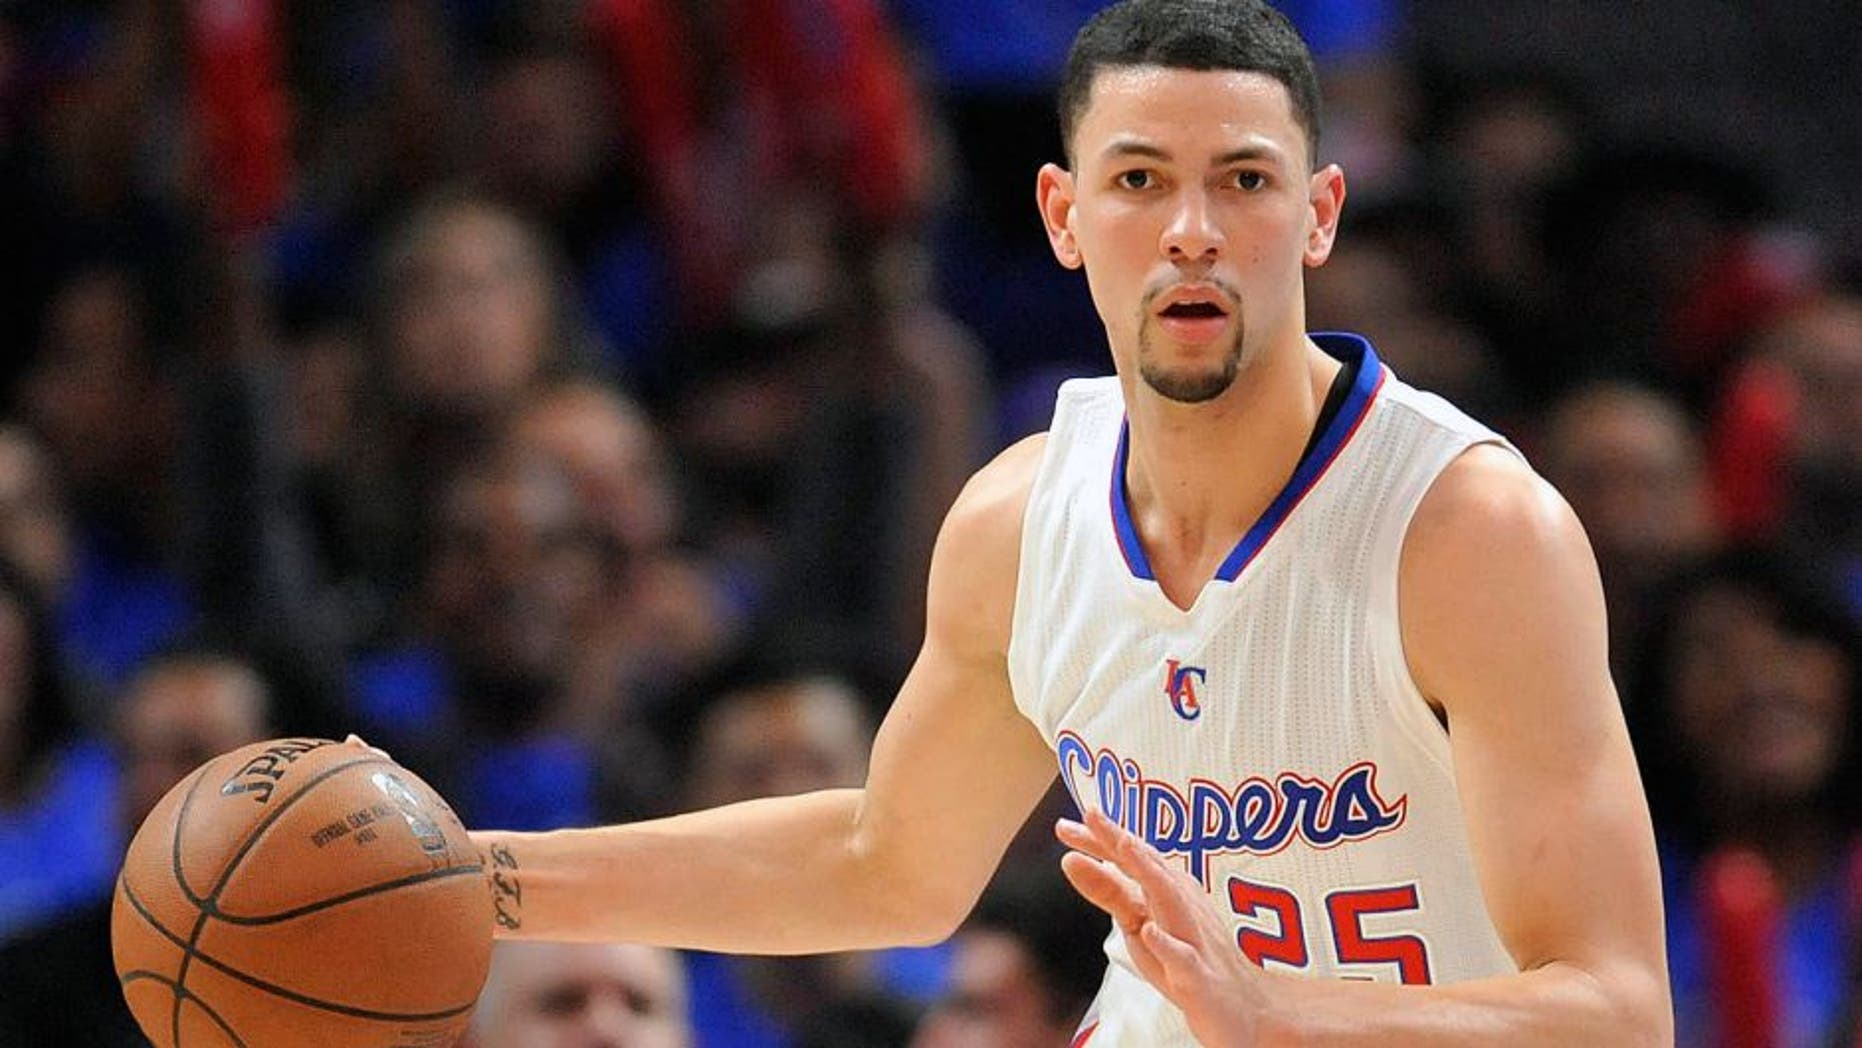 May 8, 2015; Los Angeles, CA, USA; Los Angeles Clippers guard Austin Rivers (25) controls the ball against the Houston Rockets during the second half in game three of the second round of the NBA Playoffs. at Staples Center. Mandatory Credit: Gary A. Vasquez-USA TODAY Sports